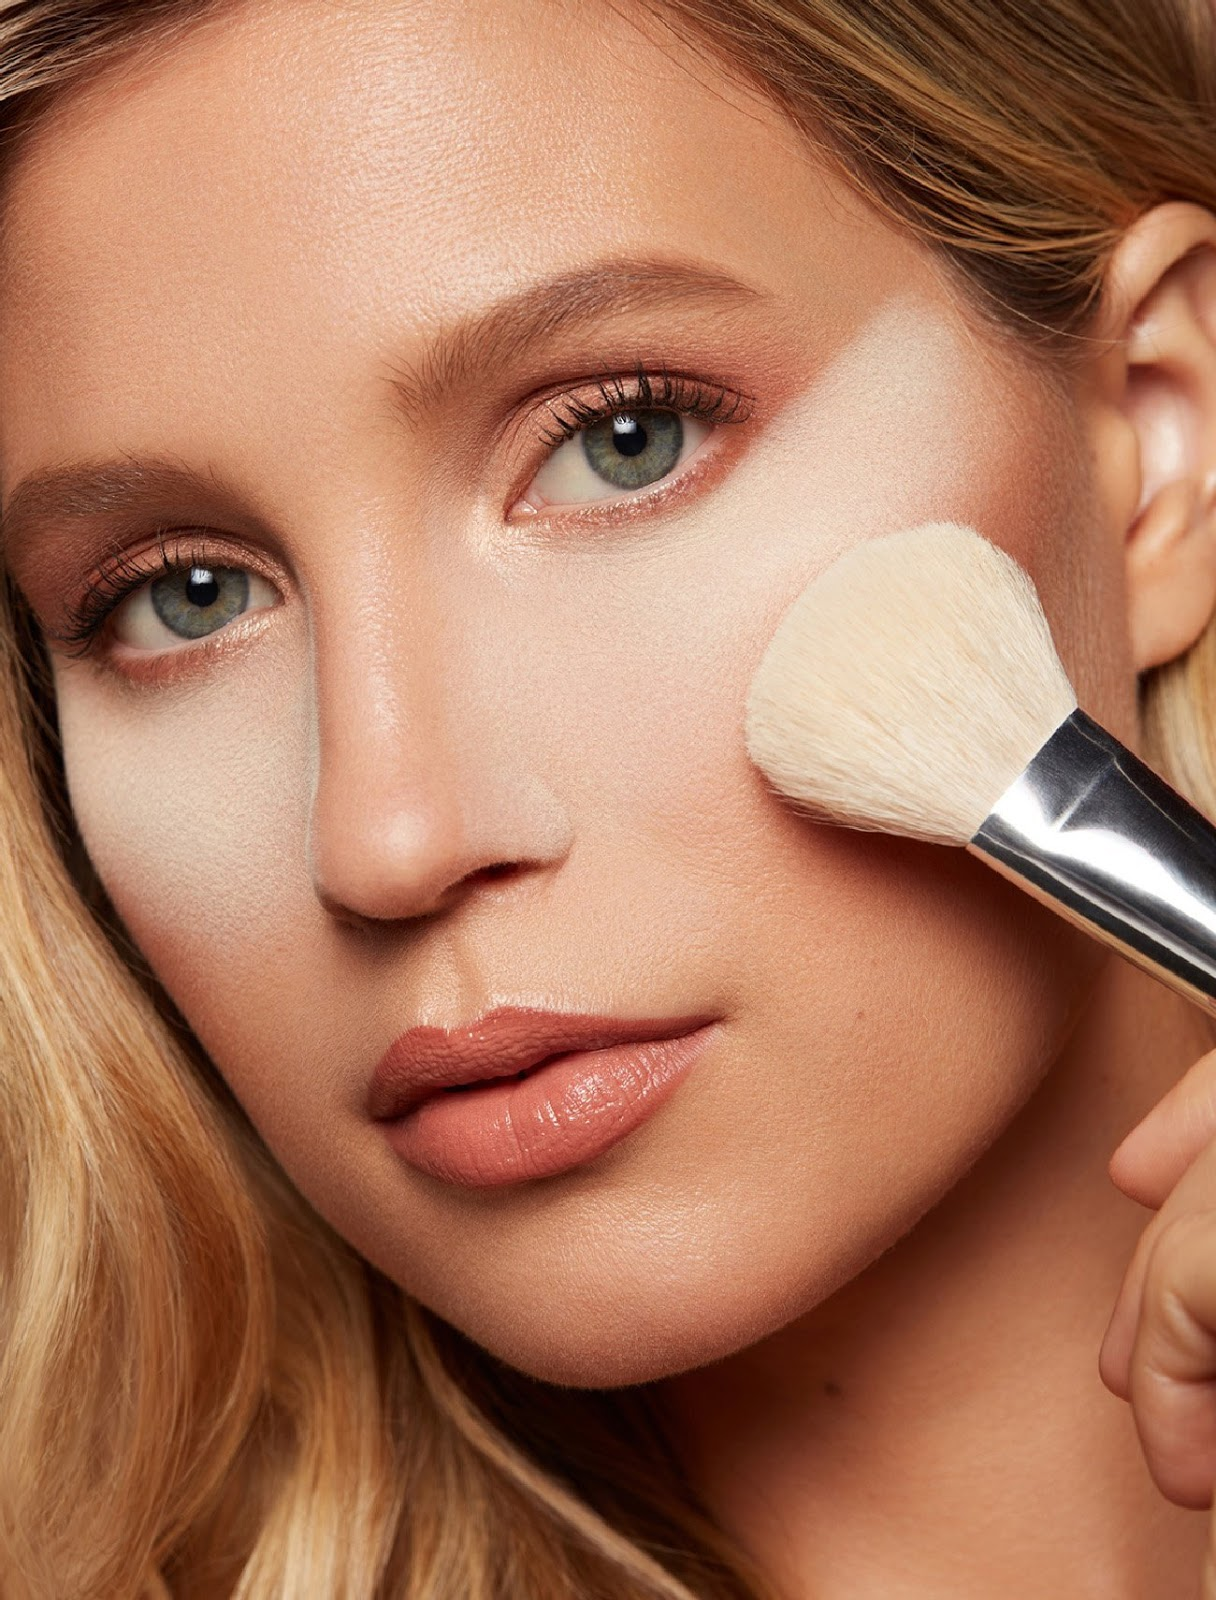 Dust setting powder in your face-Modern Makeup Tips